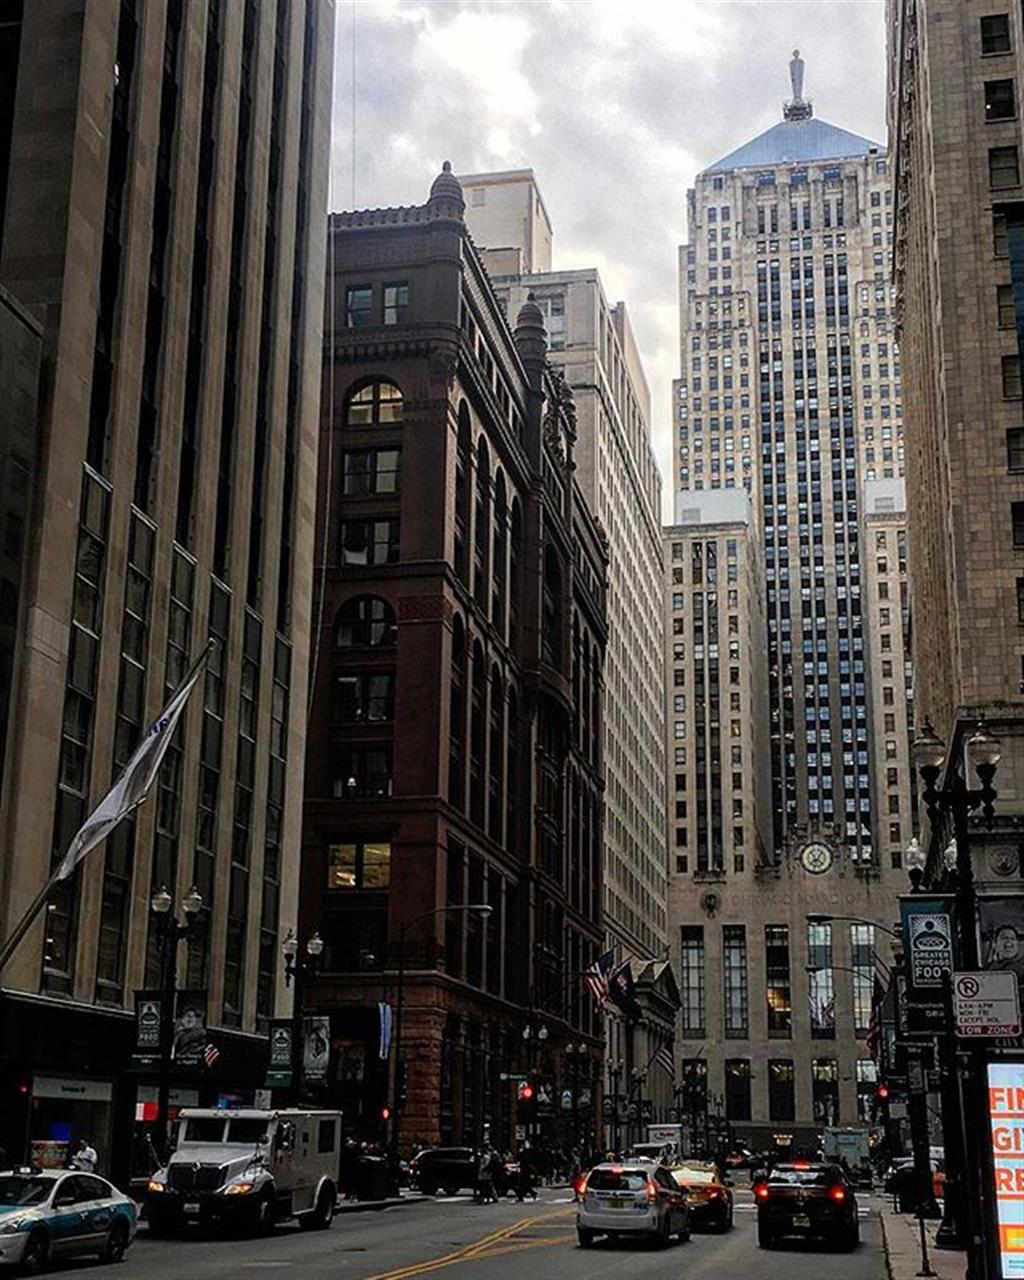 Icons and original skyscrapers along Chicago's historic LaSalle St. #chicago #loop #lasalle #boardoftrade #rookery #burnham #architecturephotography #leadingrelocal #bairdwarner #realestate #warmfall